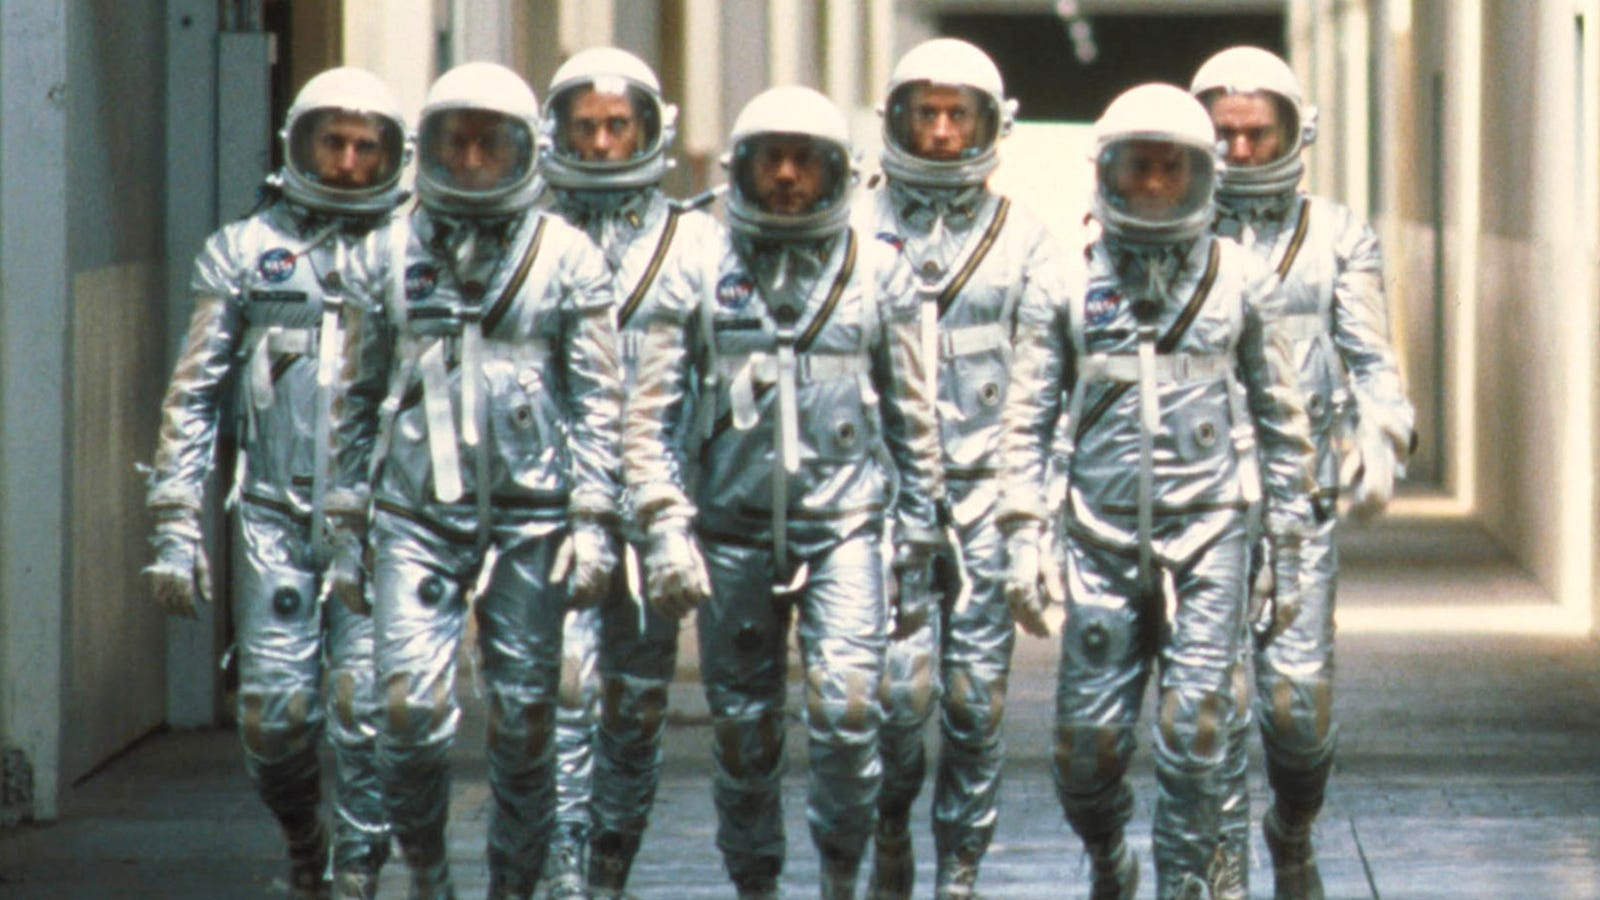 Leonardo DiCaprio Is Turning The Right Stuff Into a TV Series